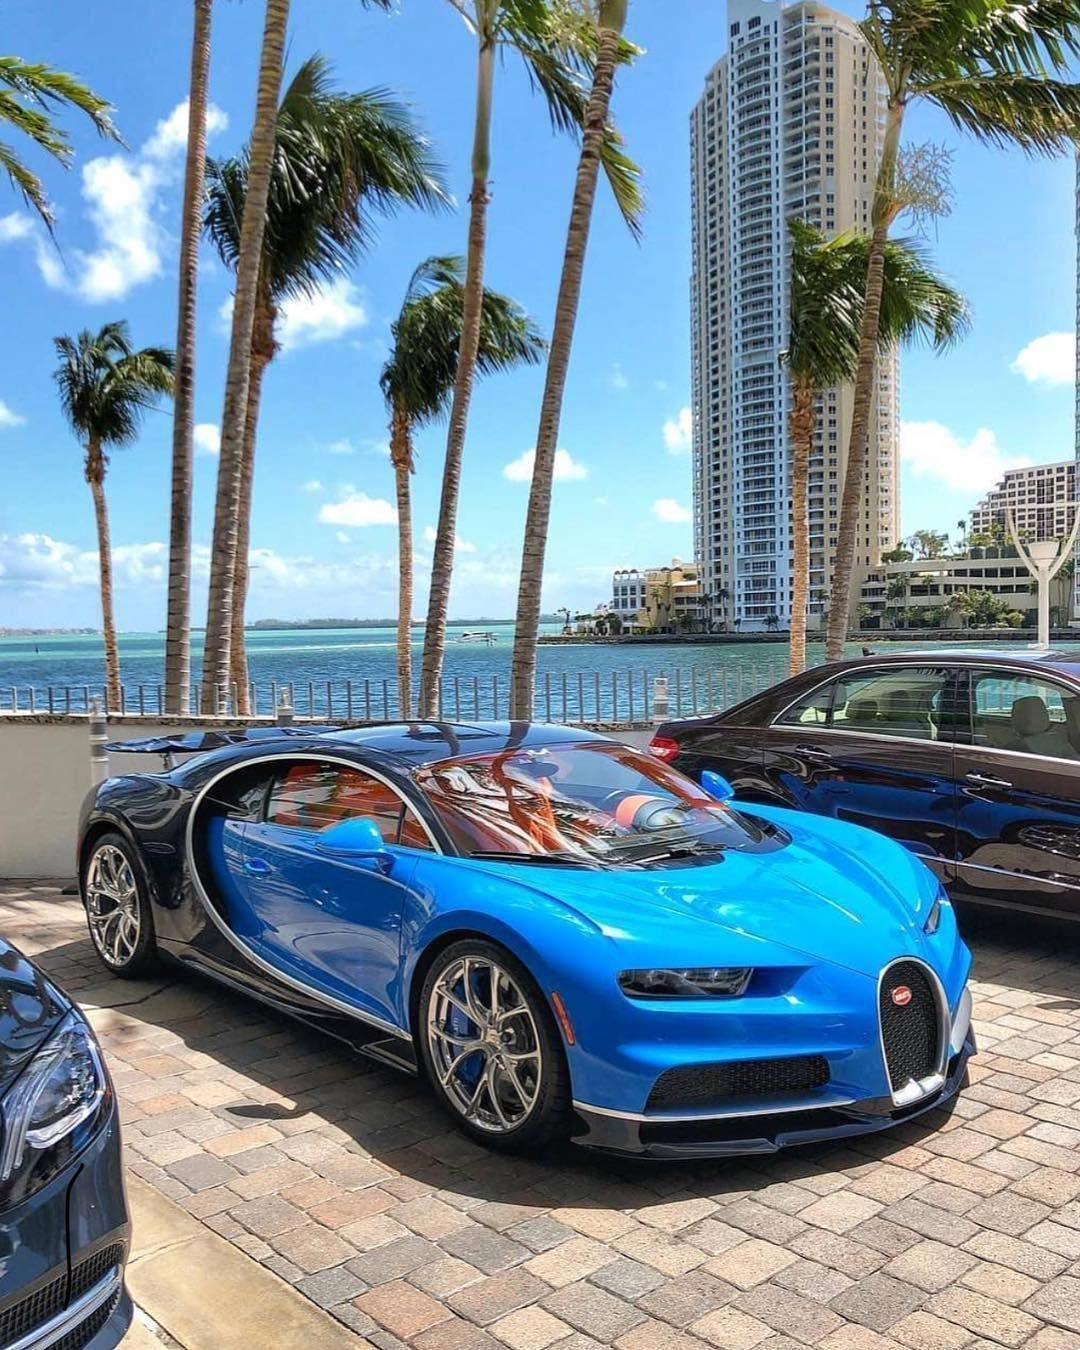 Super Cars With Blue Colour Makes Your Mood Car Sportscar Supercar Awesome Ferraripink Best Luxury Cars Sports Cars Lamborghini Bugatti Cars